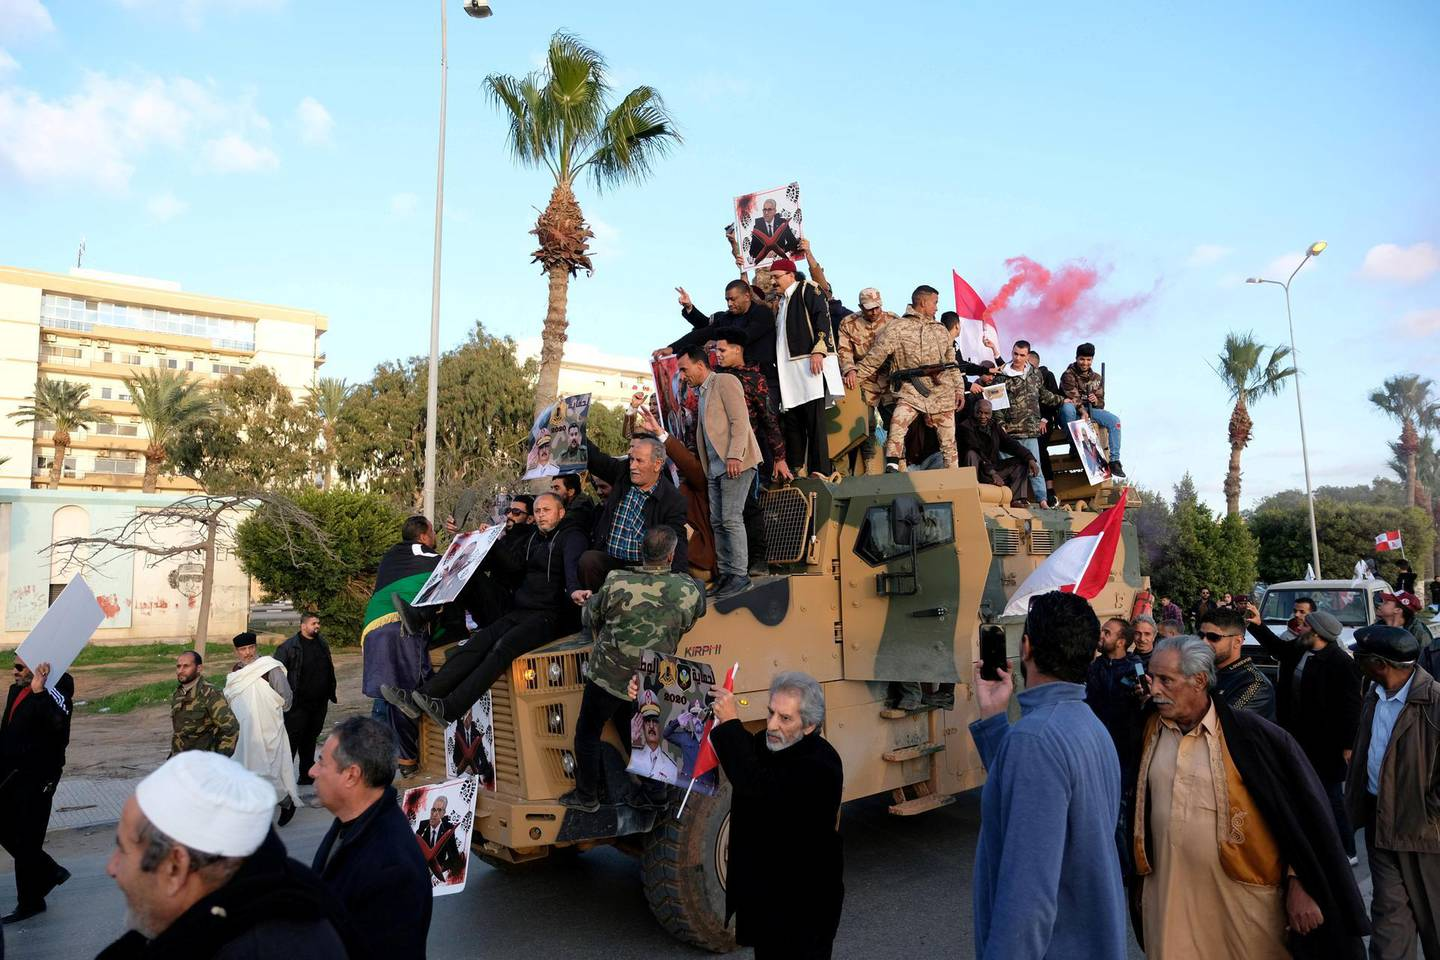 FILE PHOTO: Supporters of Libyan National Army (LNA) commanded by Khalifa Haftar, celebrate on top of a Turkish military armored vehicle, which LNA said they confiscated during Tripoli clashes, in Benghazi, Libya January 28, 2020. REUTERS/STAFF/File Photo